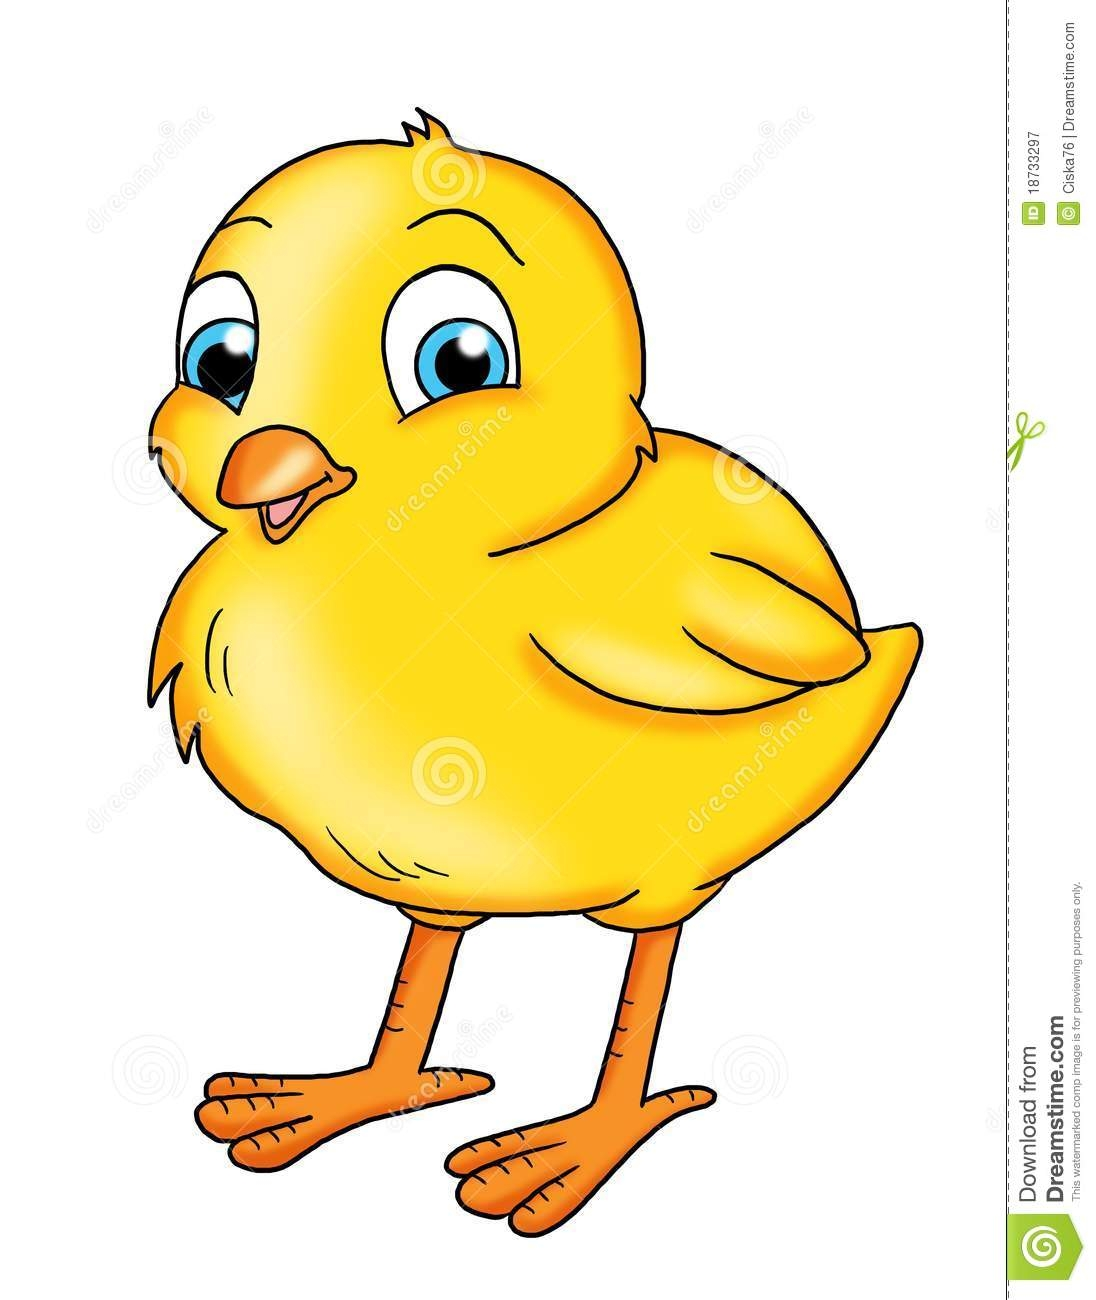 1724 Chick free clipart.